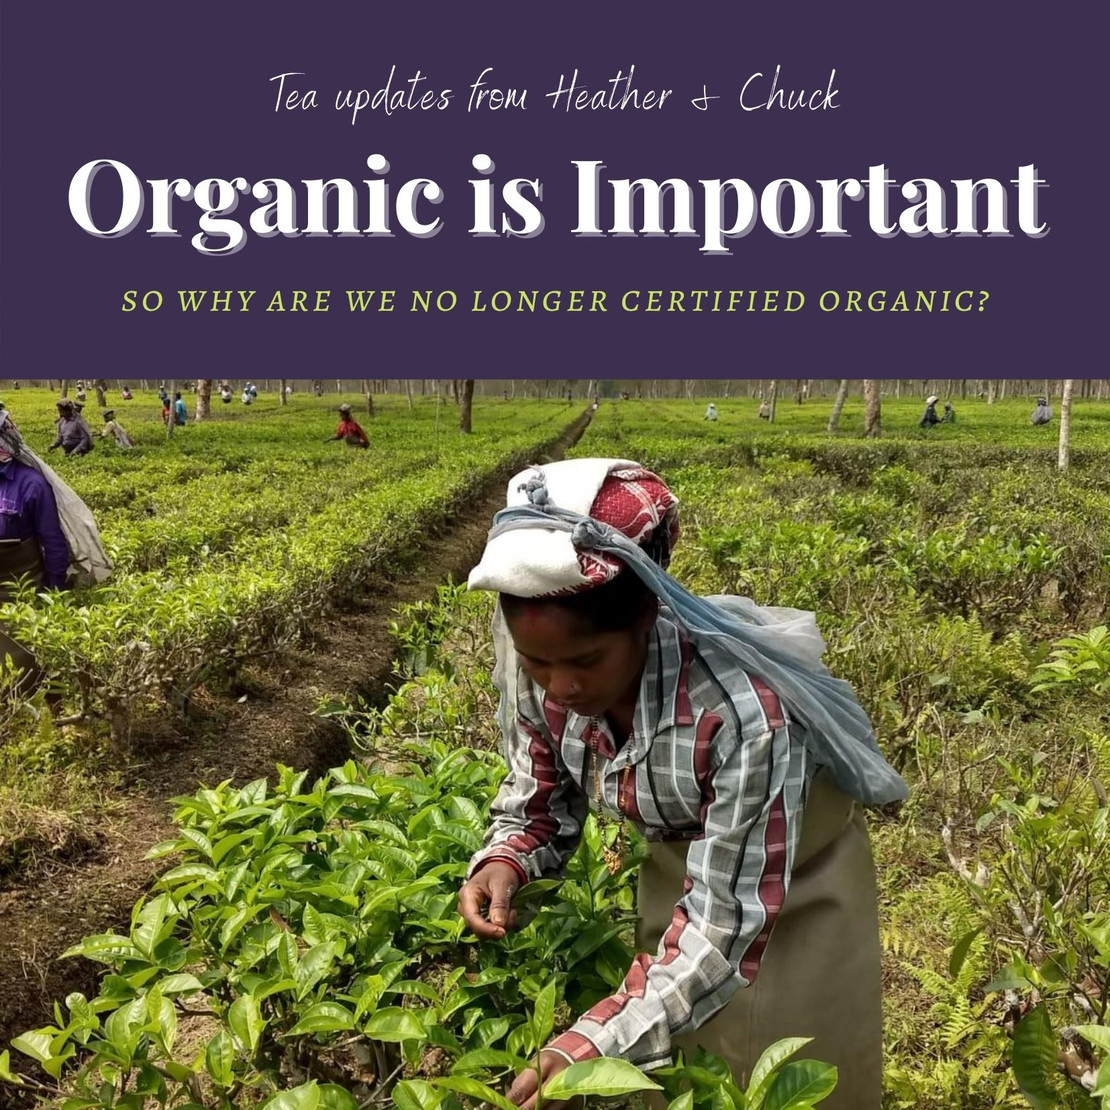 Organic is Important. So why are we not certified?